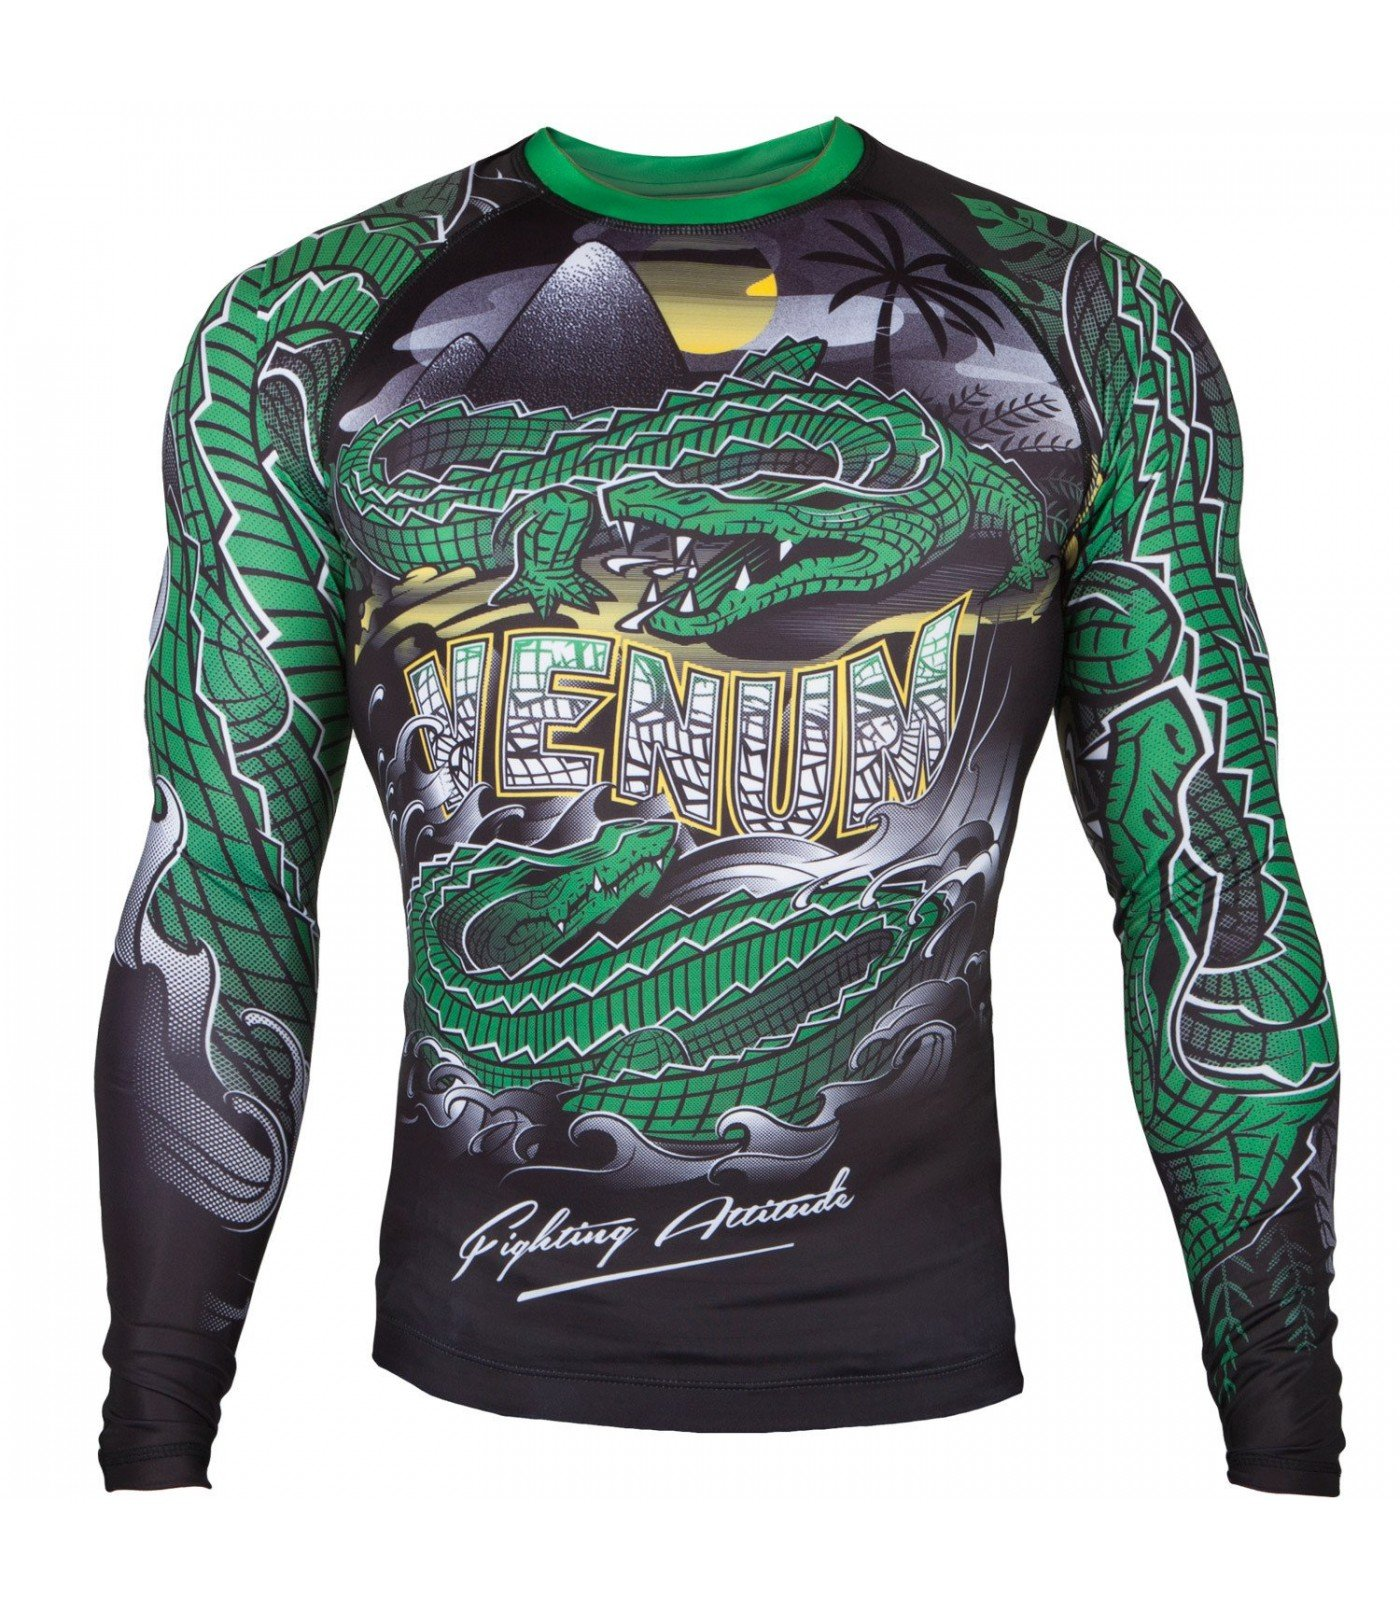 Рашгард - Venum Crocodile Rashguard - Black/Green - Long Sleeves​